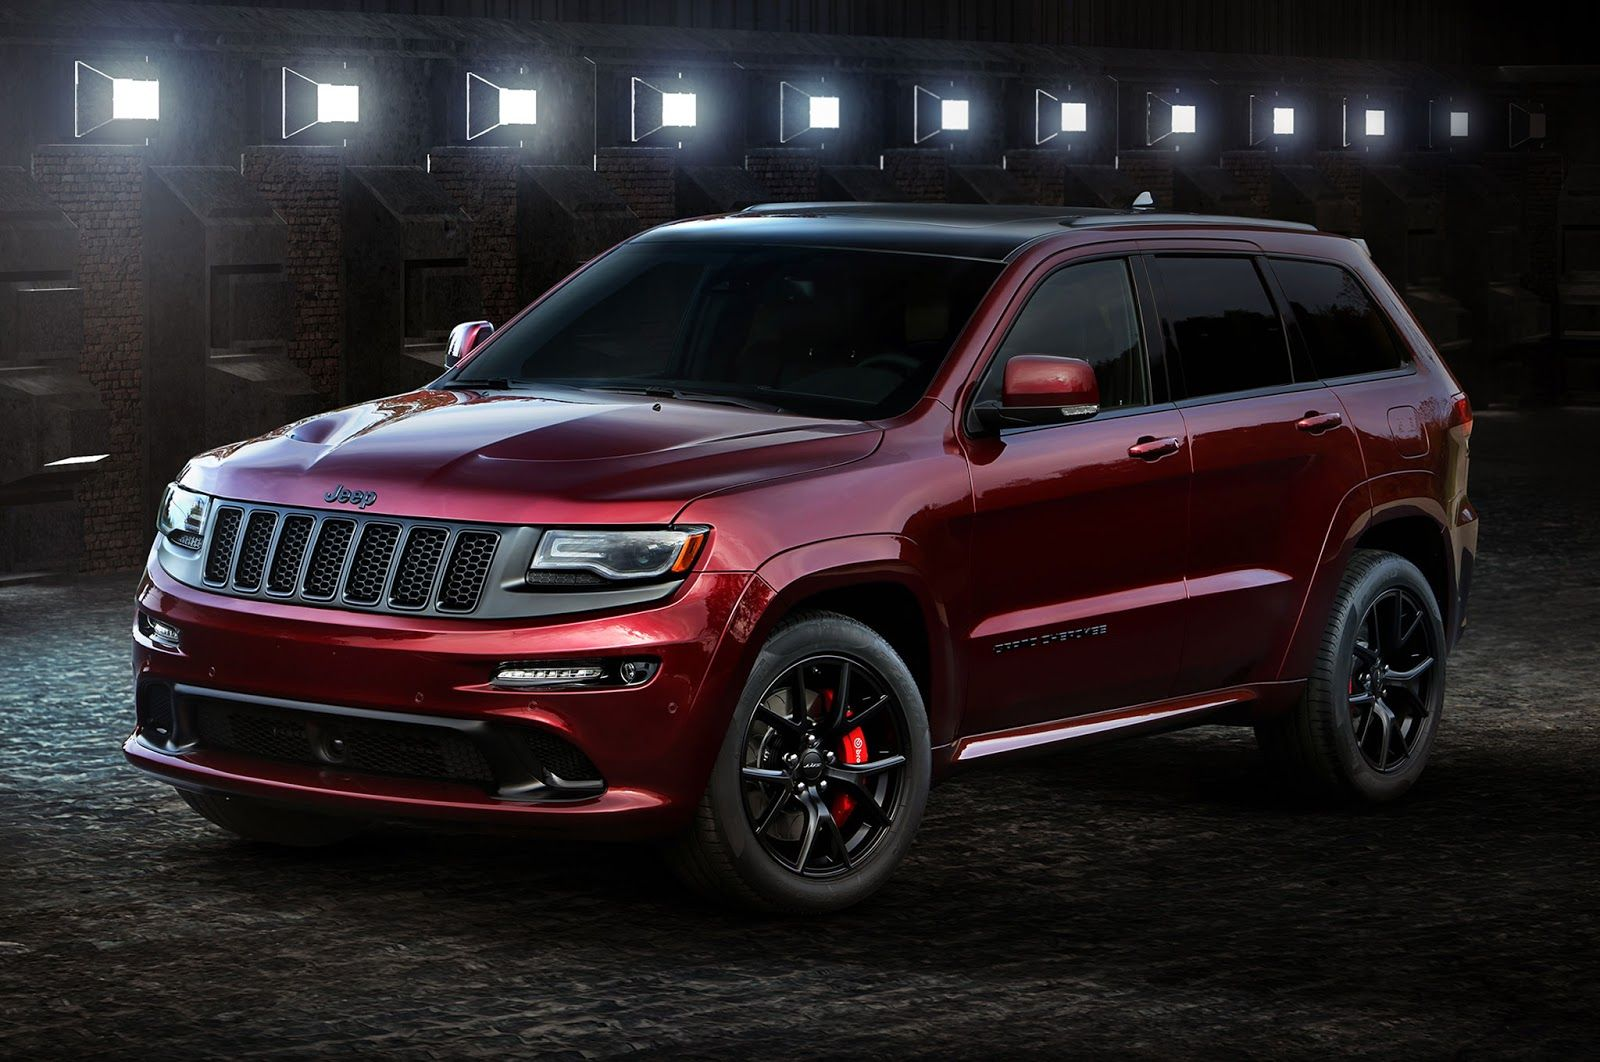 2016 JEEP GRAND CHEROKEE MODIFICATIONS, REVIEWS AND